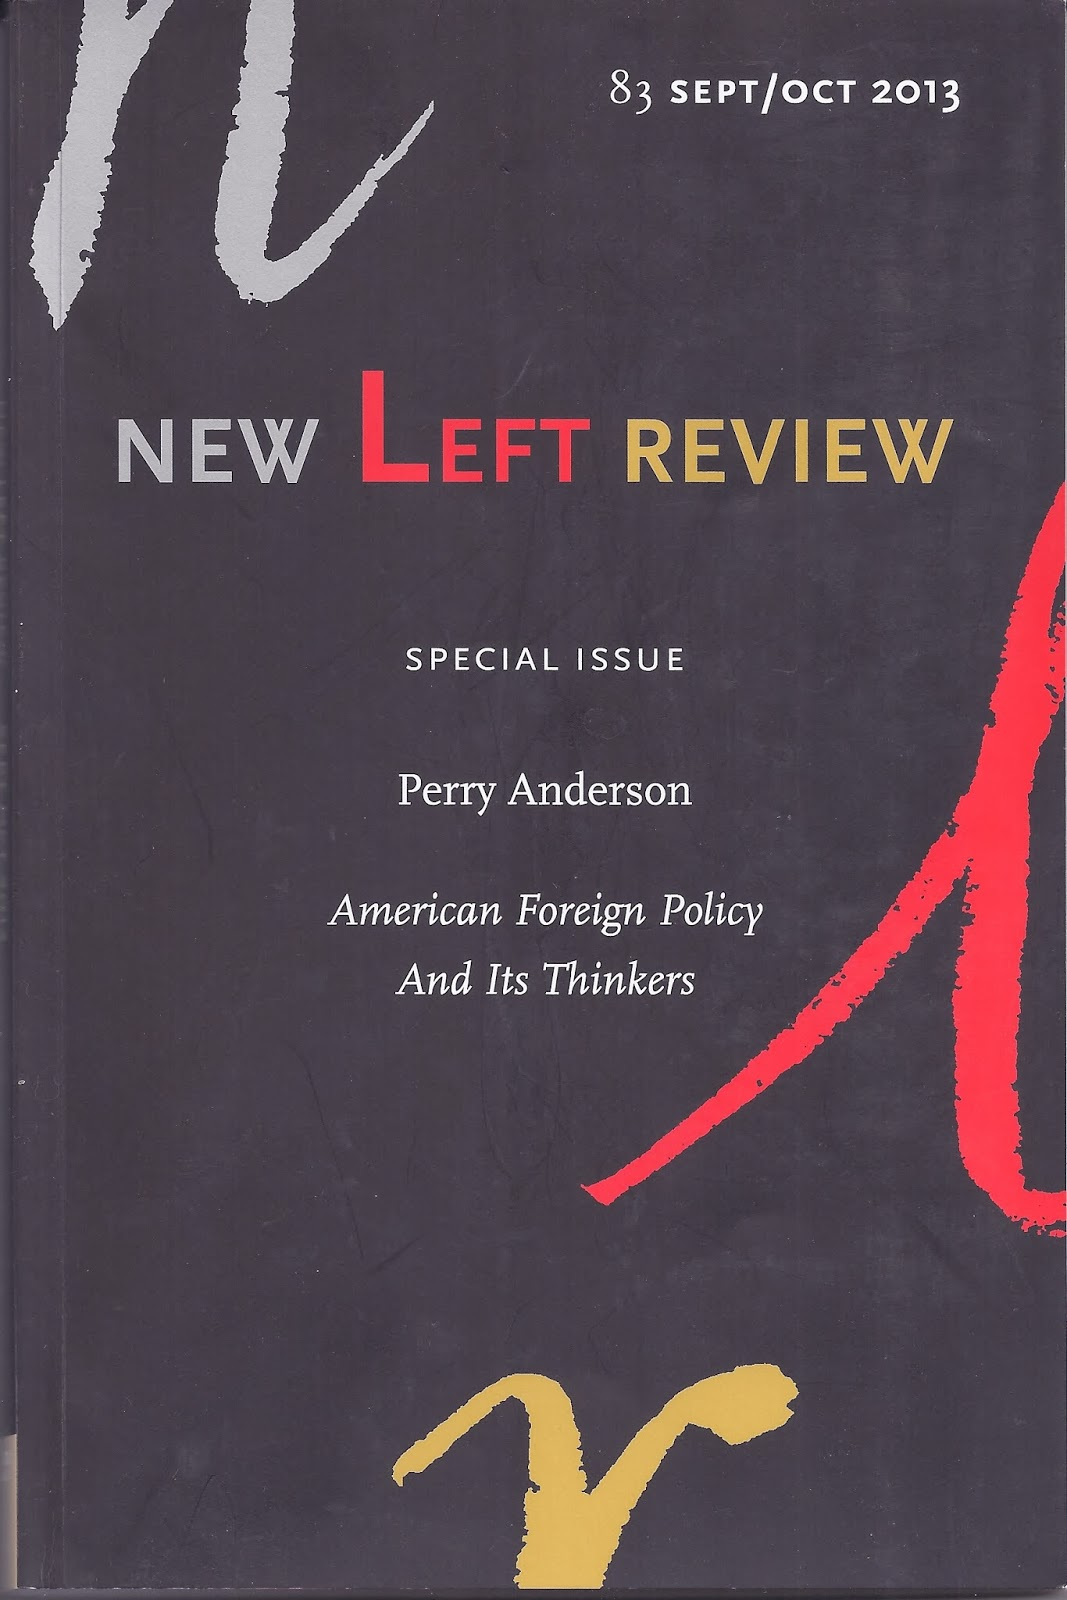 us foreign policy essay u s relations in charts and graphics  reading this book cover to cover review perry anderson american foreign policy and its thinkers